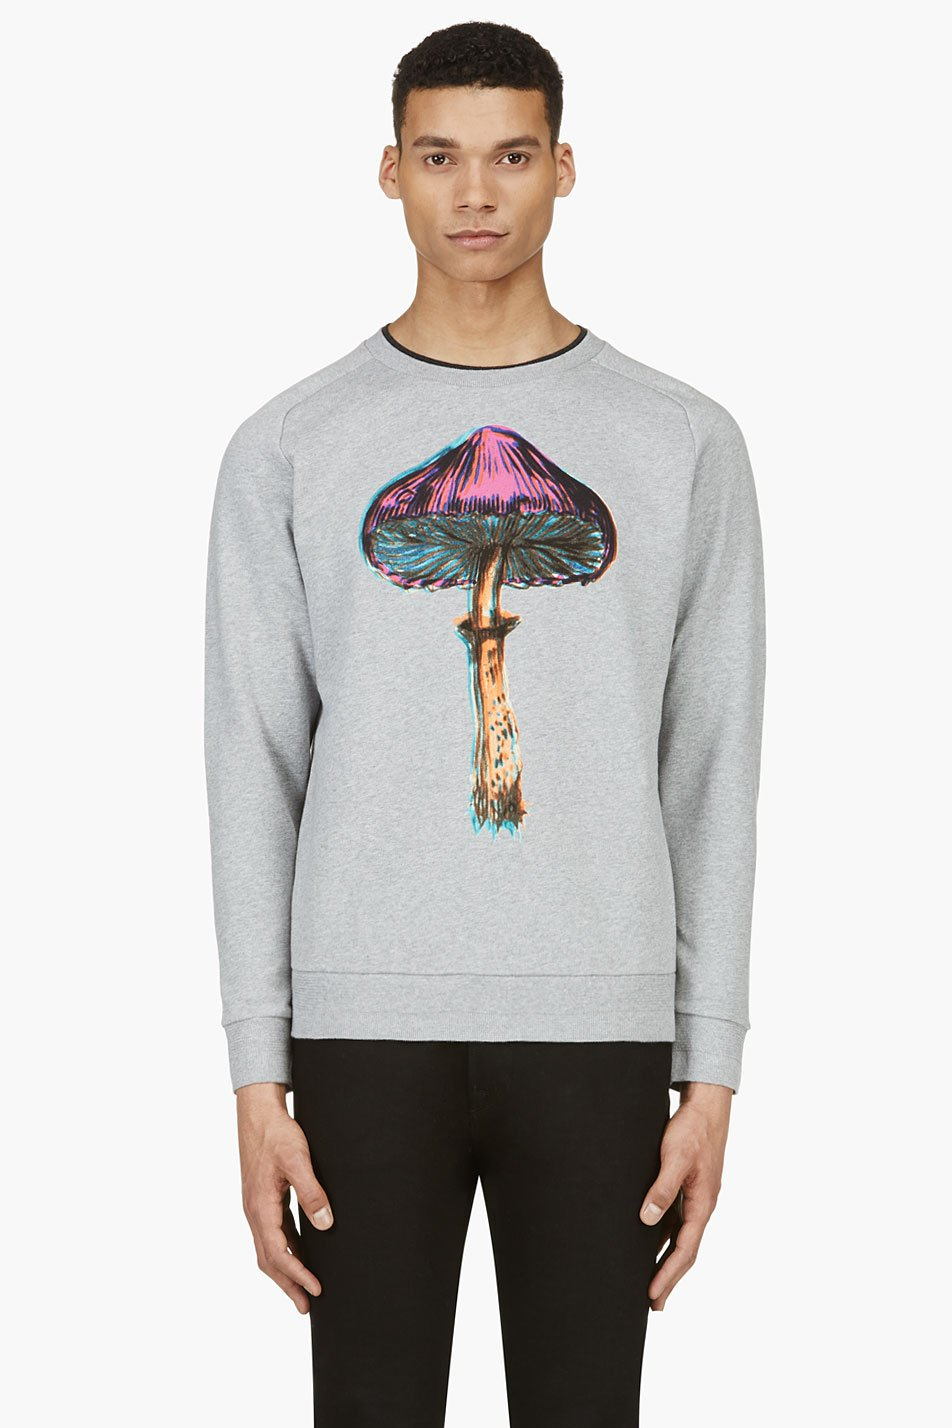 paul smith grey long sleeve mushroom print crewneck